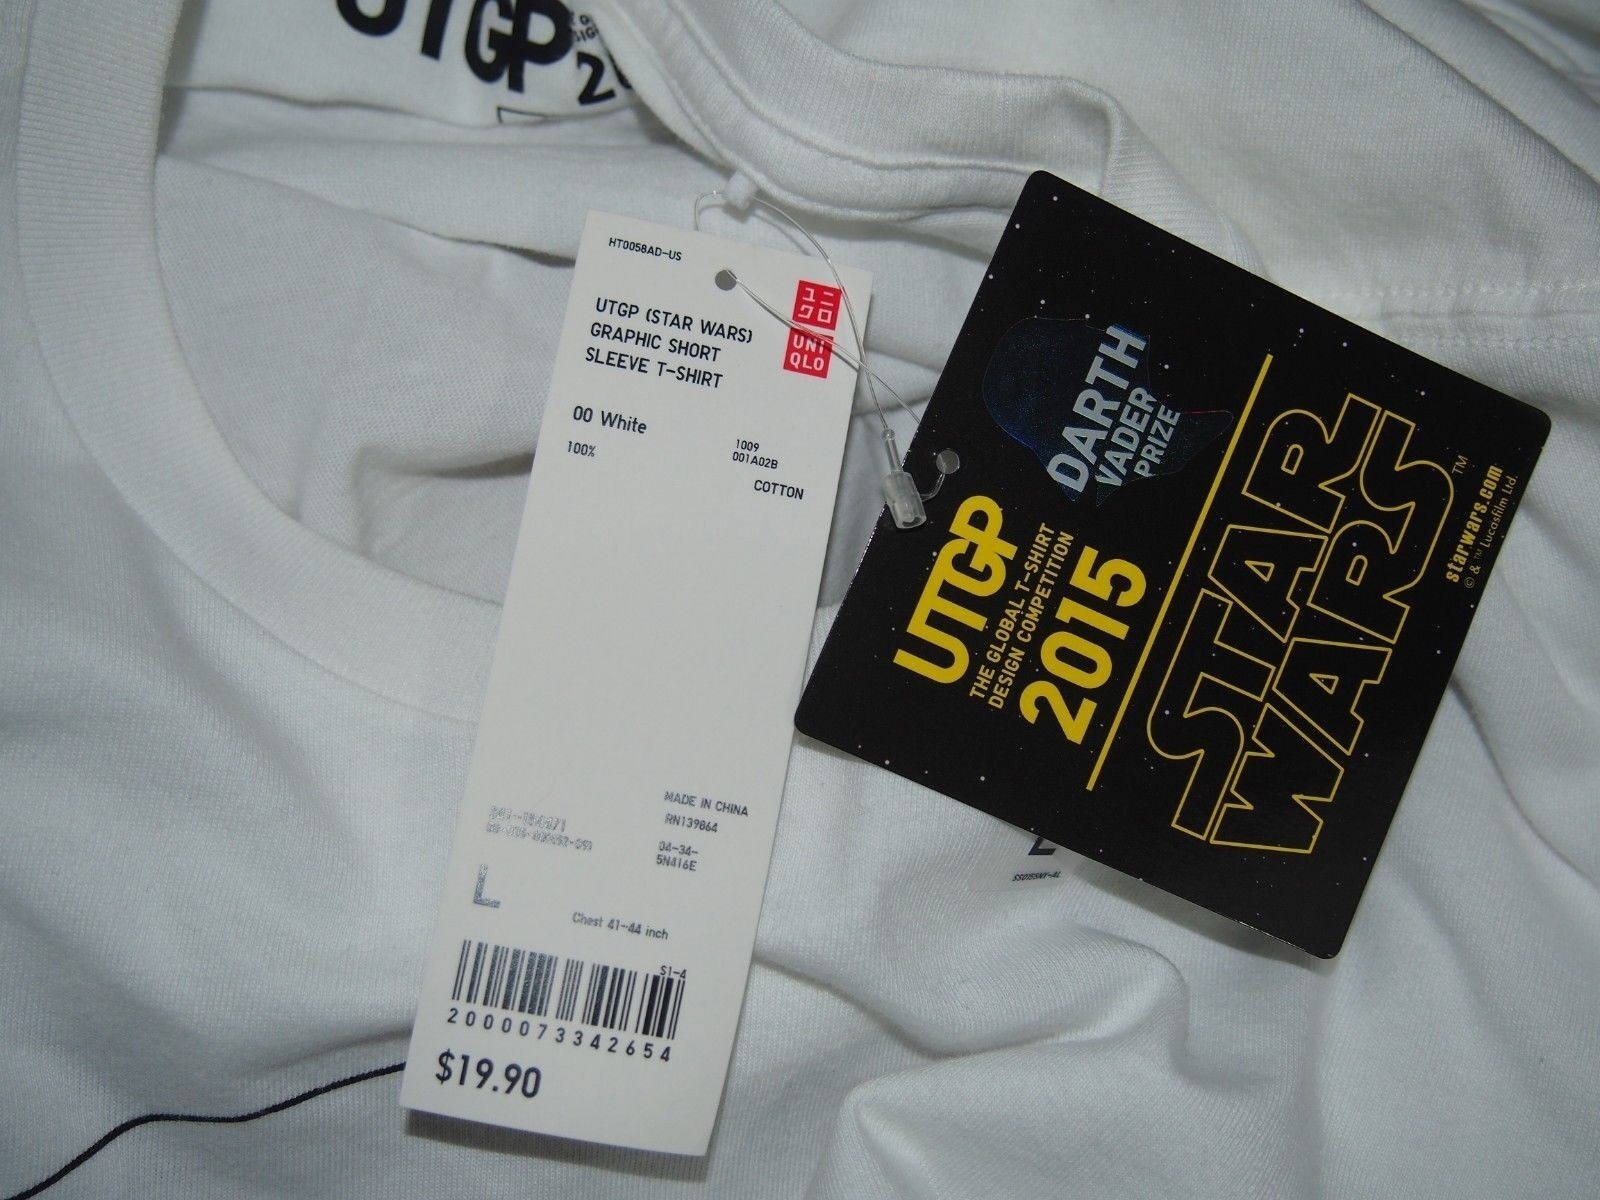 Uniqlo 2015 Grand Prix Star Wars Limited Edition T-shirt T-shirt Edition Uomo's size Large af6a72